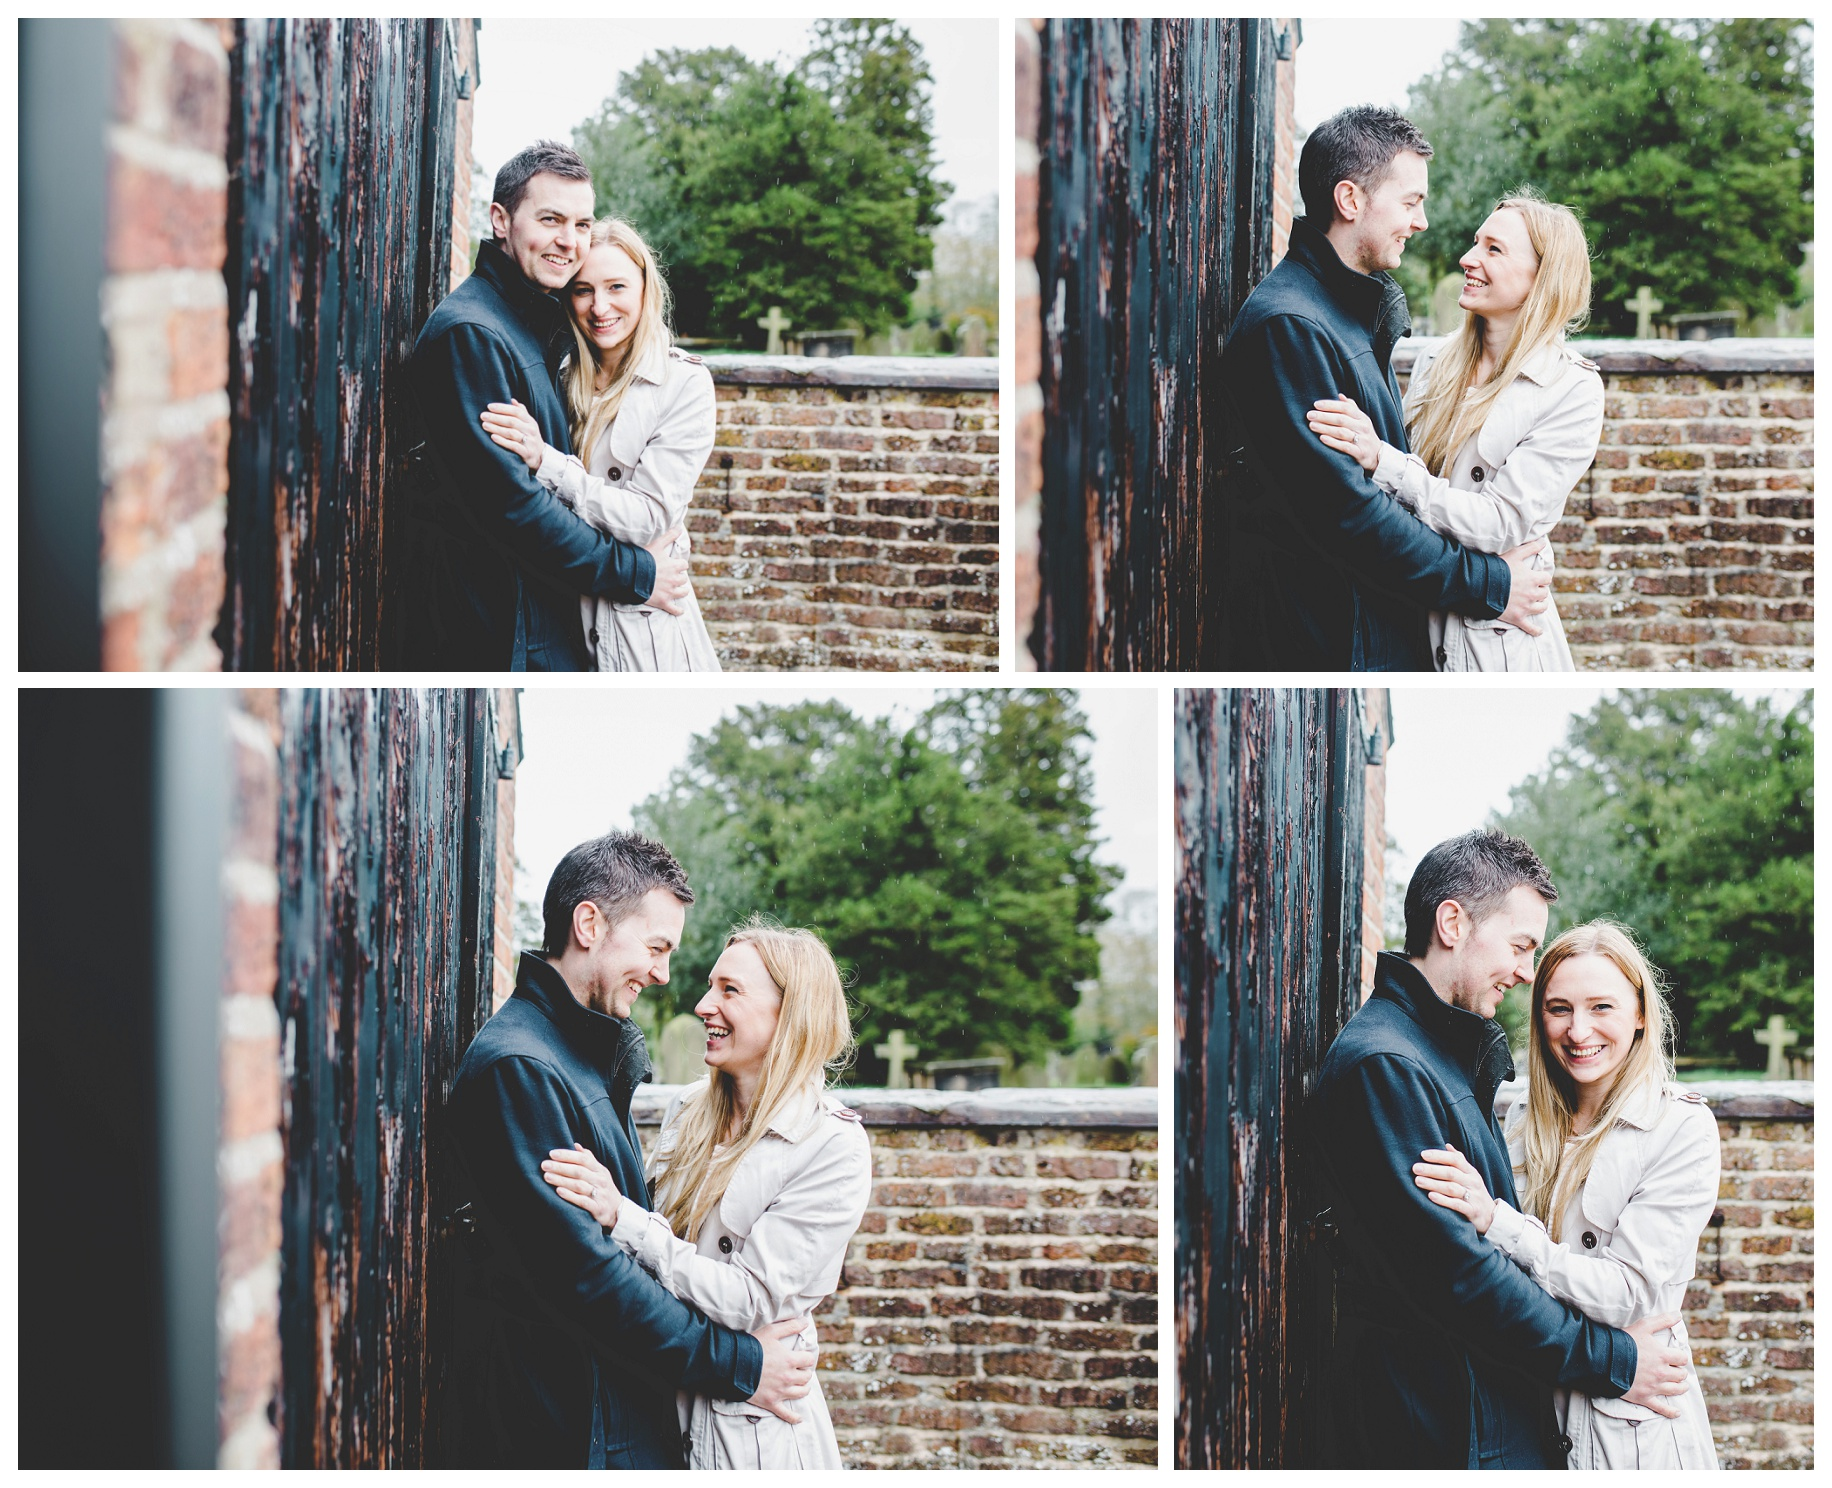 Cheshire wedding photographer - pre wedding photoshoot - The Oaktree of Peover (3)